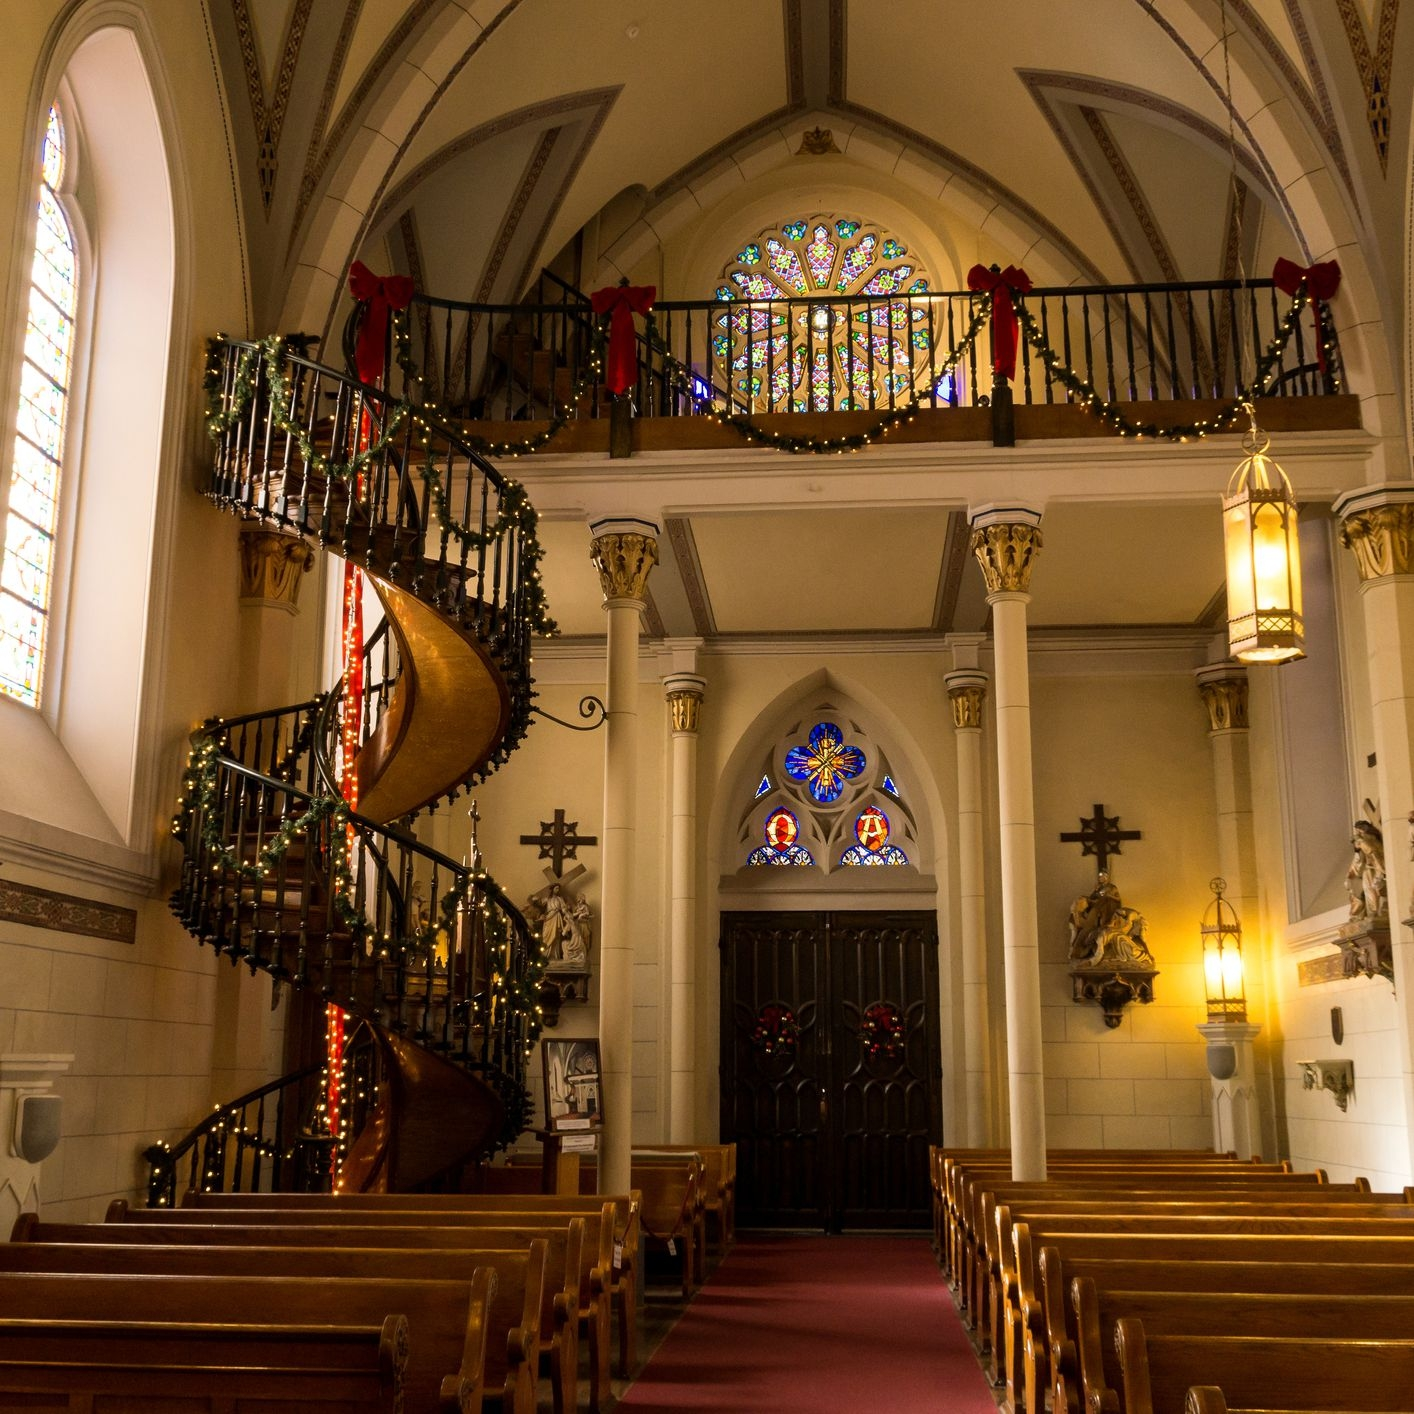 The Loretto Chapel S Miraculous Staircase   Chapel With Spiral Staircase   Catholic Church   Stairway   Miraculous   Choir Loft   Sante Fe